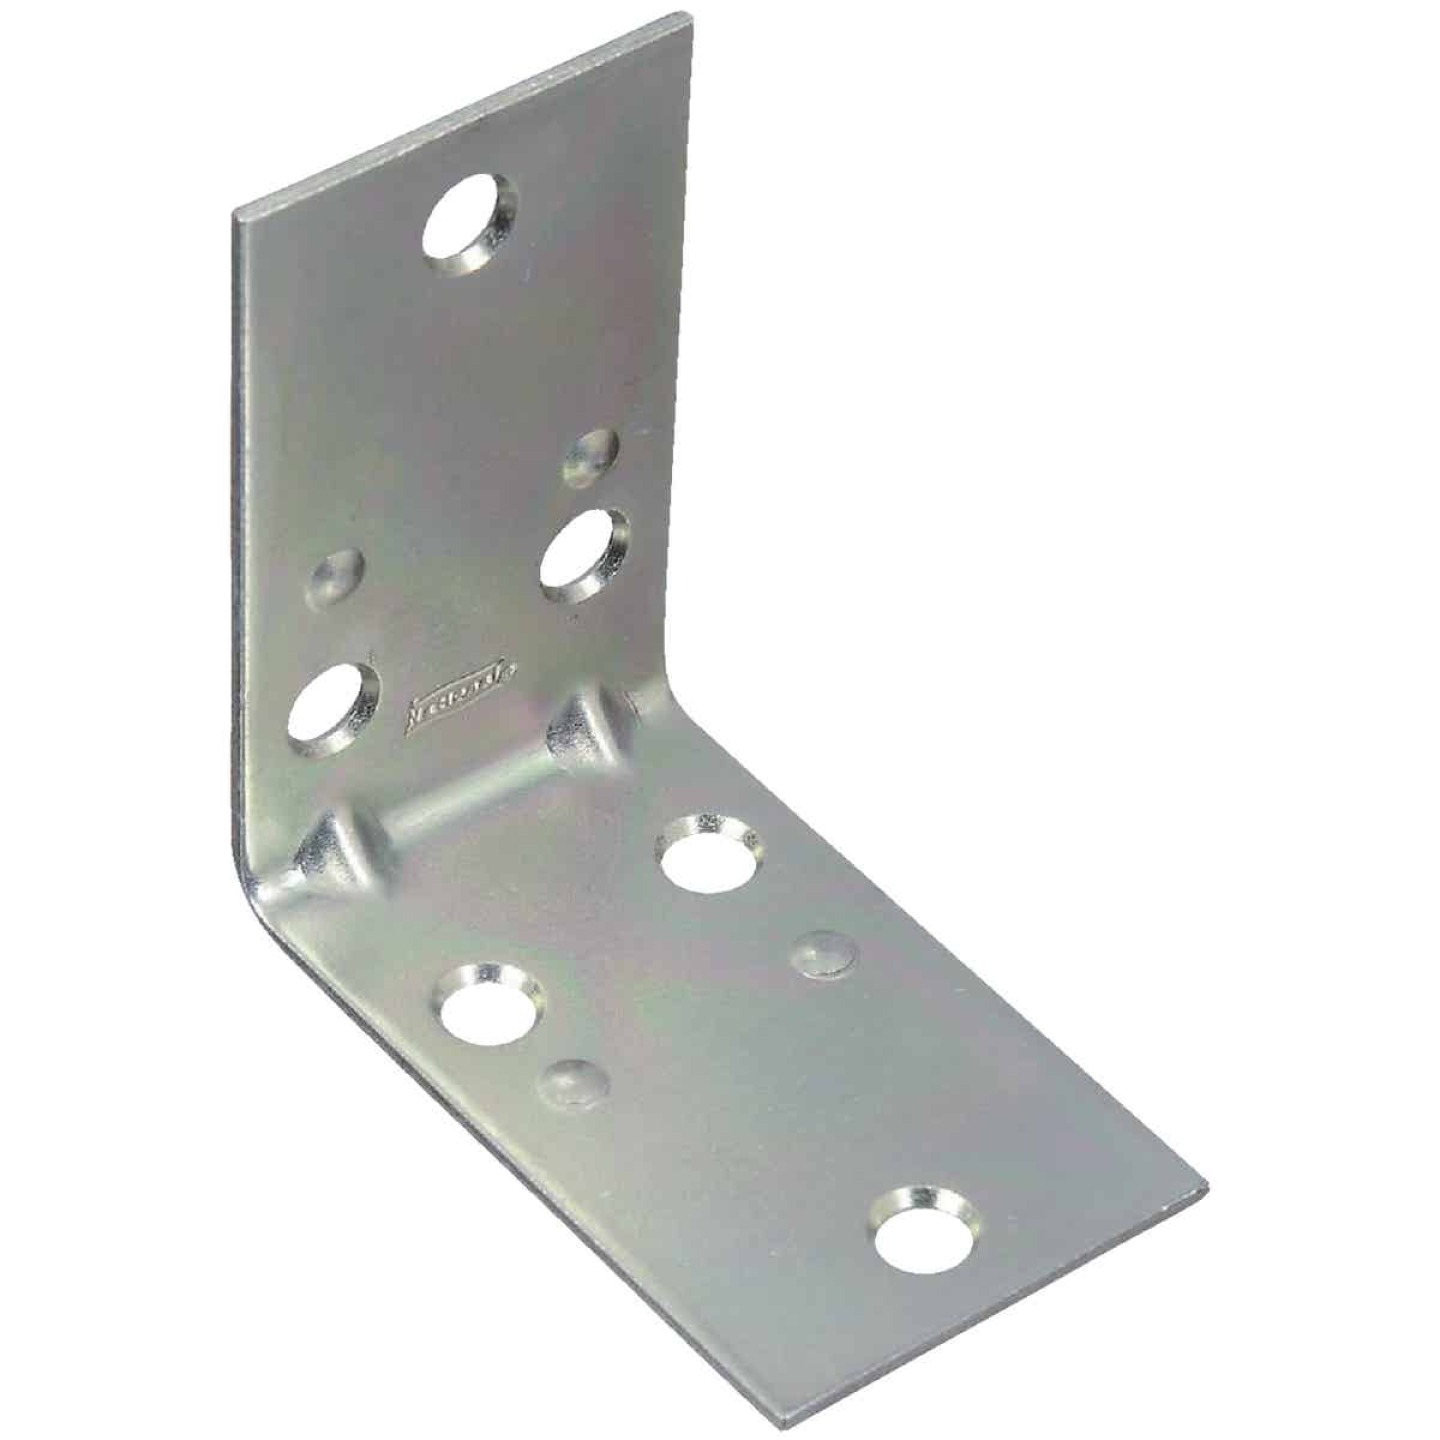 National Catalog V121 2-1/2 In. x 1-1/2 In. Double Wide Zinc Corner Brace Image 1